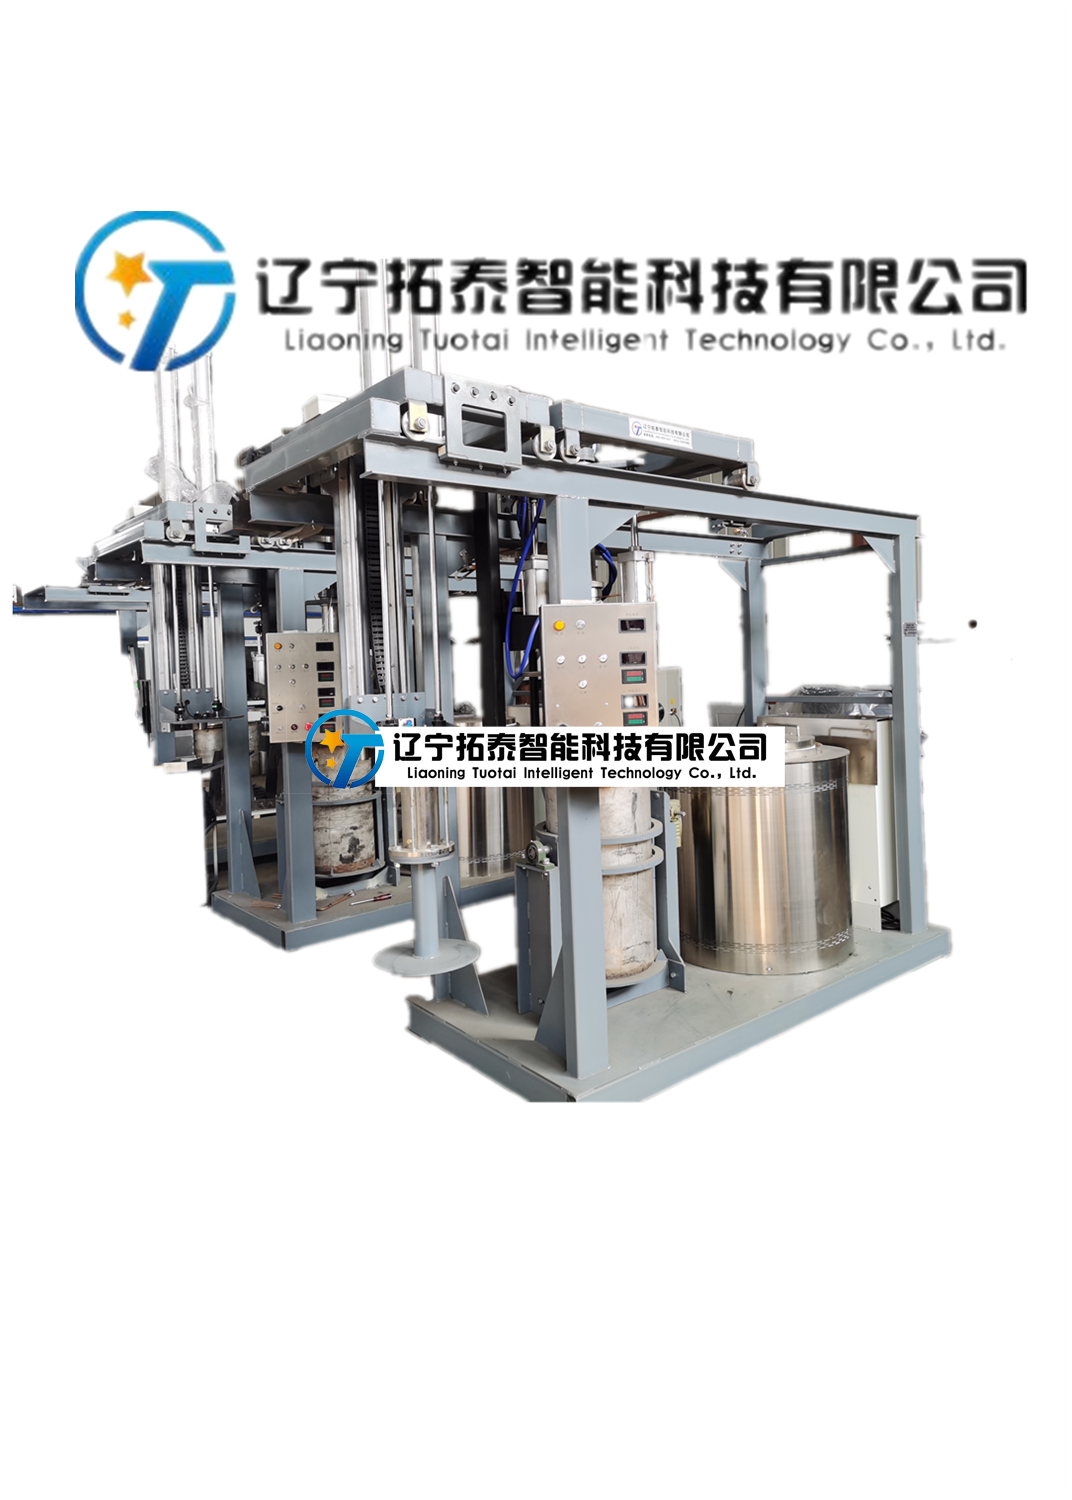 TT-YLD1-40 type simulated pressure test coke oven (load test coke oven)